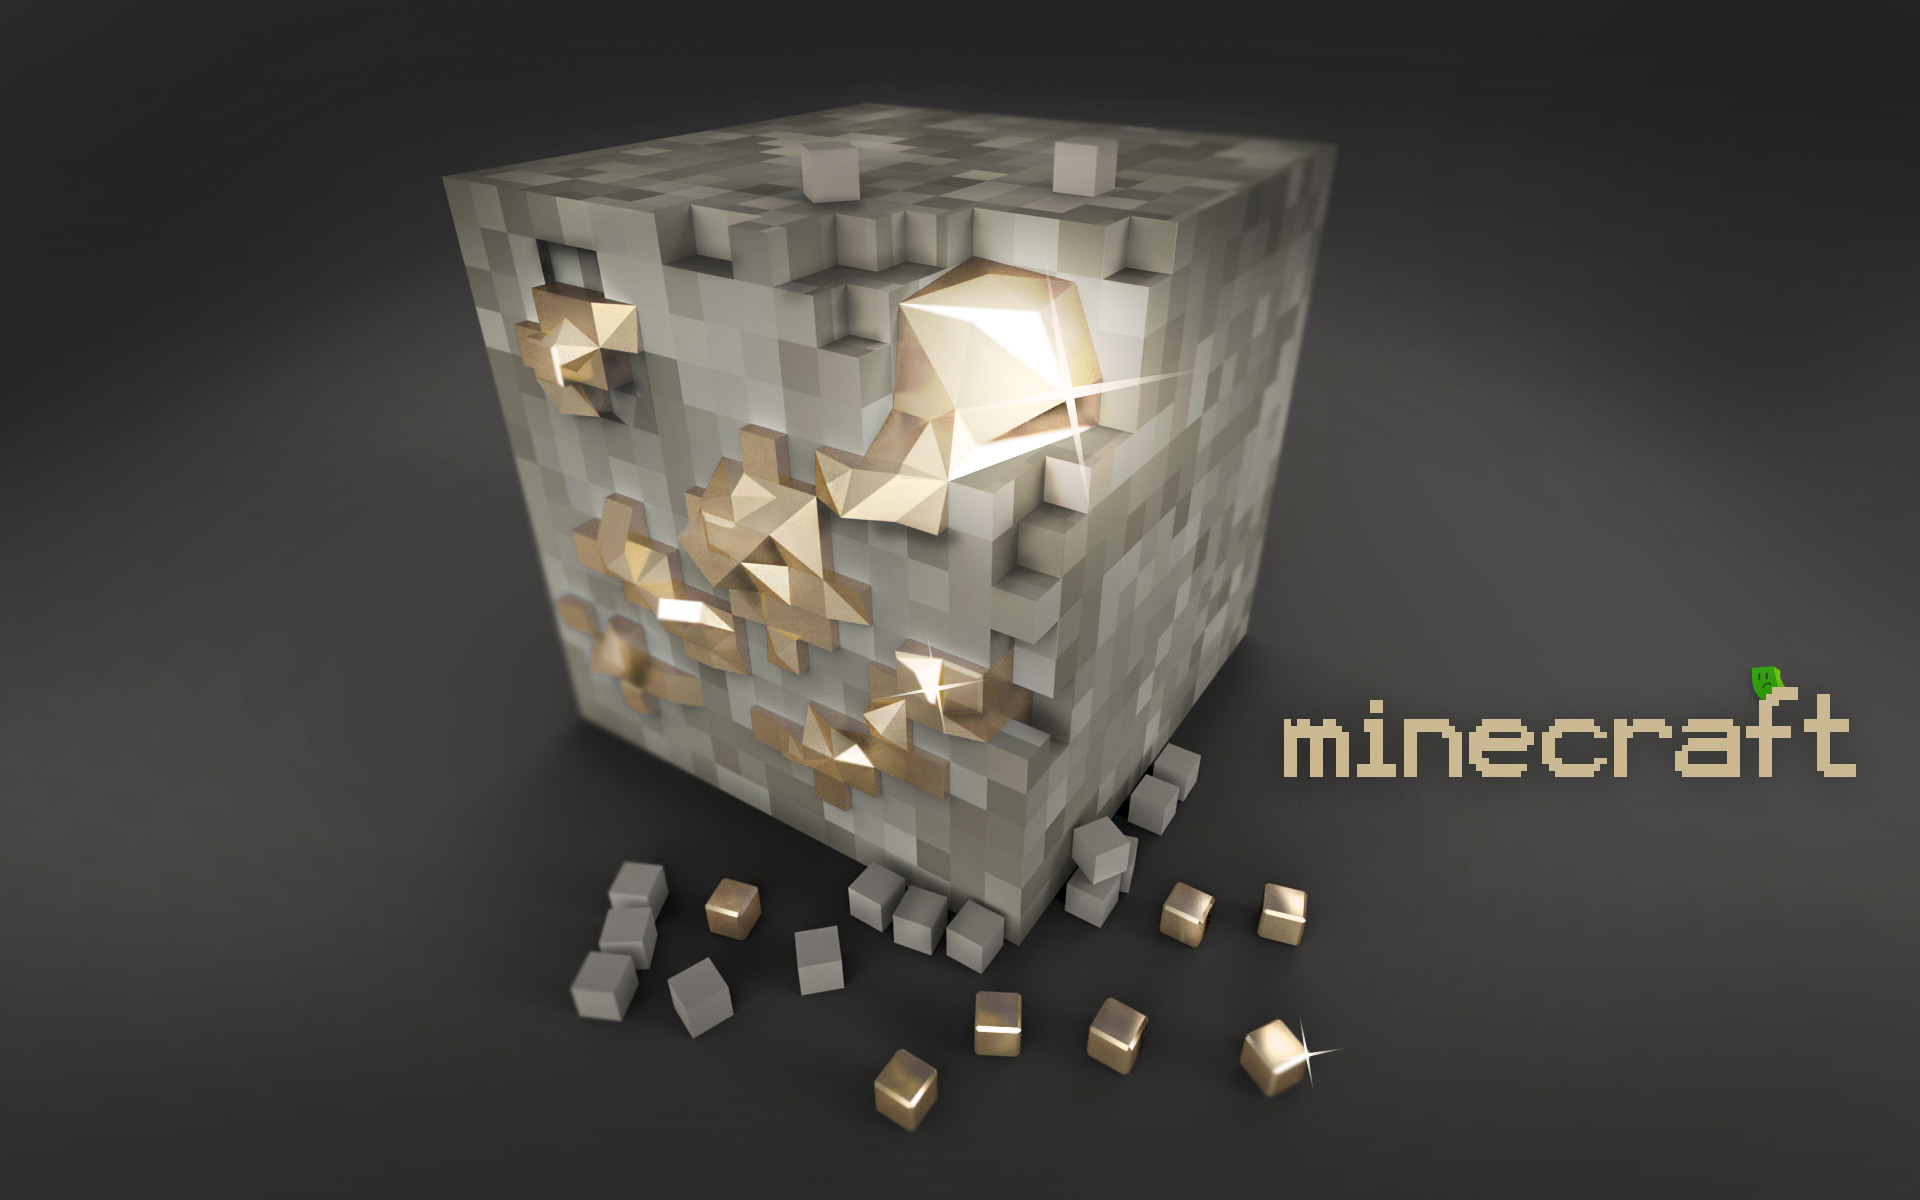 Fond d'écran wallpaper Minecraft